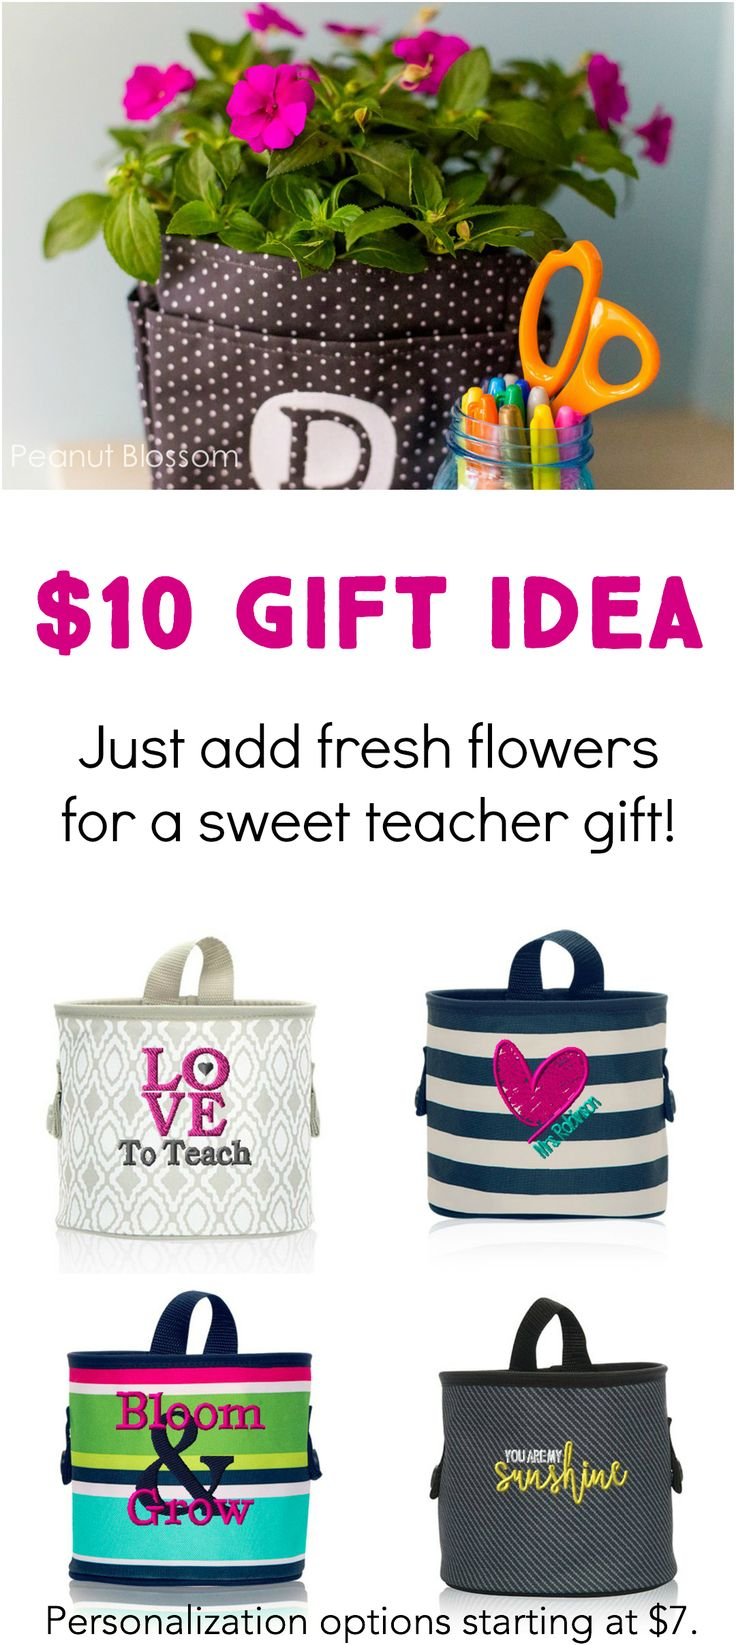 "What an adorable teacher appreciation gift idea for just $10! So simple and affordable. Just grab a Thirty One Gifrts Oh-Snap Bin in a summery pattern and fill it with a blooming plant for her yard. She can use the bin to hold pens and desk items the rest of the year! Personalize it with her name or a sweet message like ""You are my sunshine!"" with a baby sunflower plant. Too cute!"